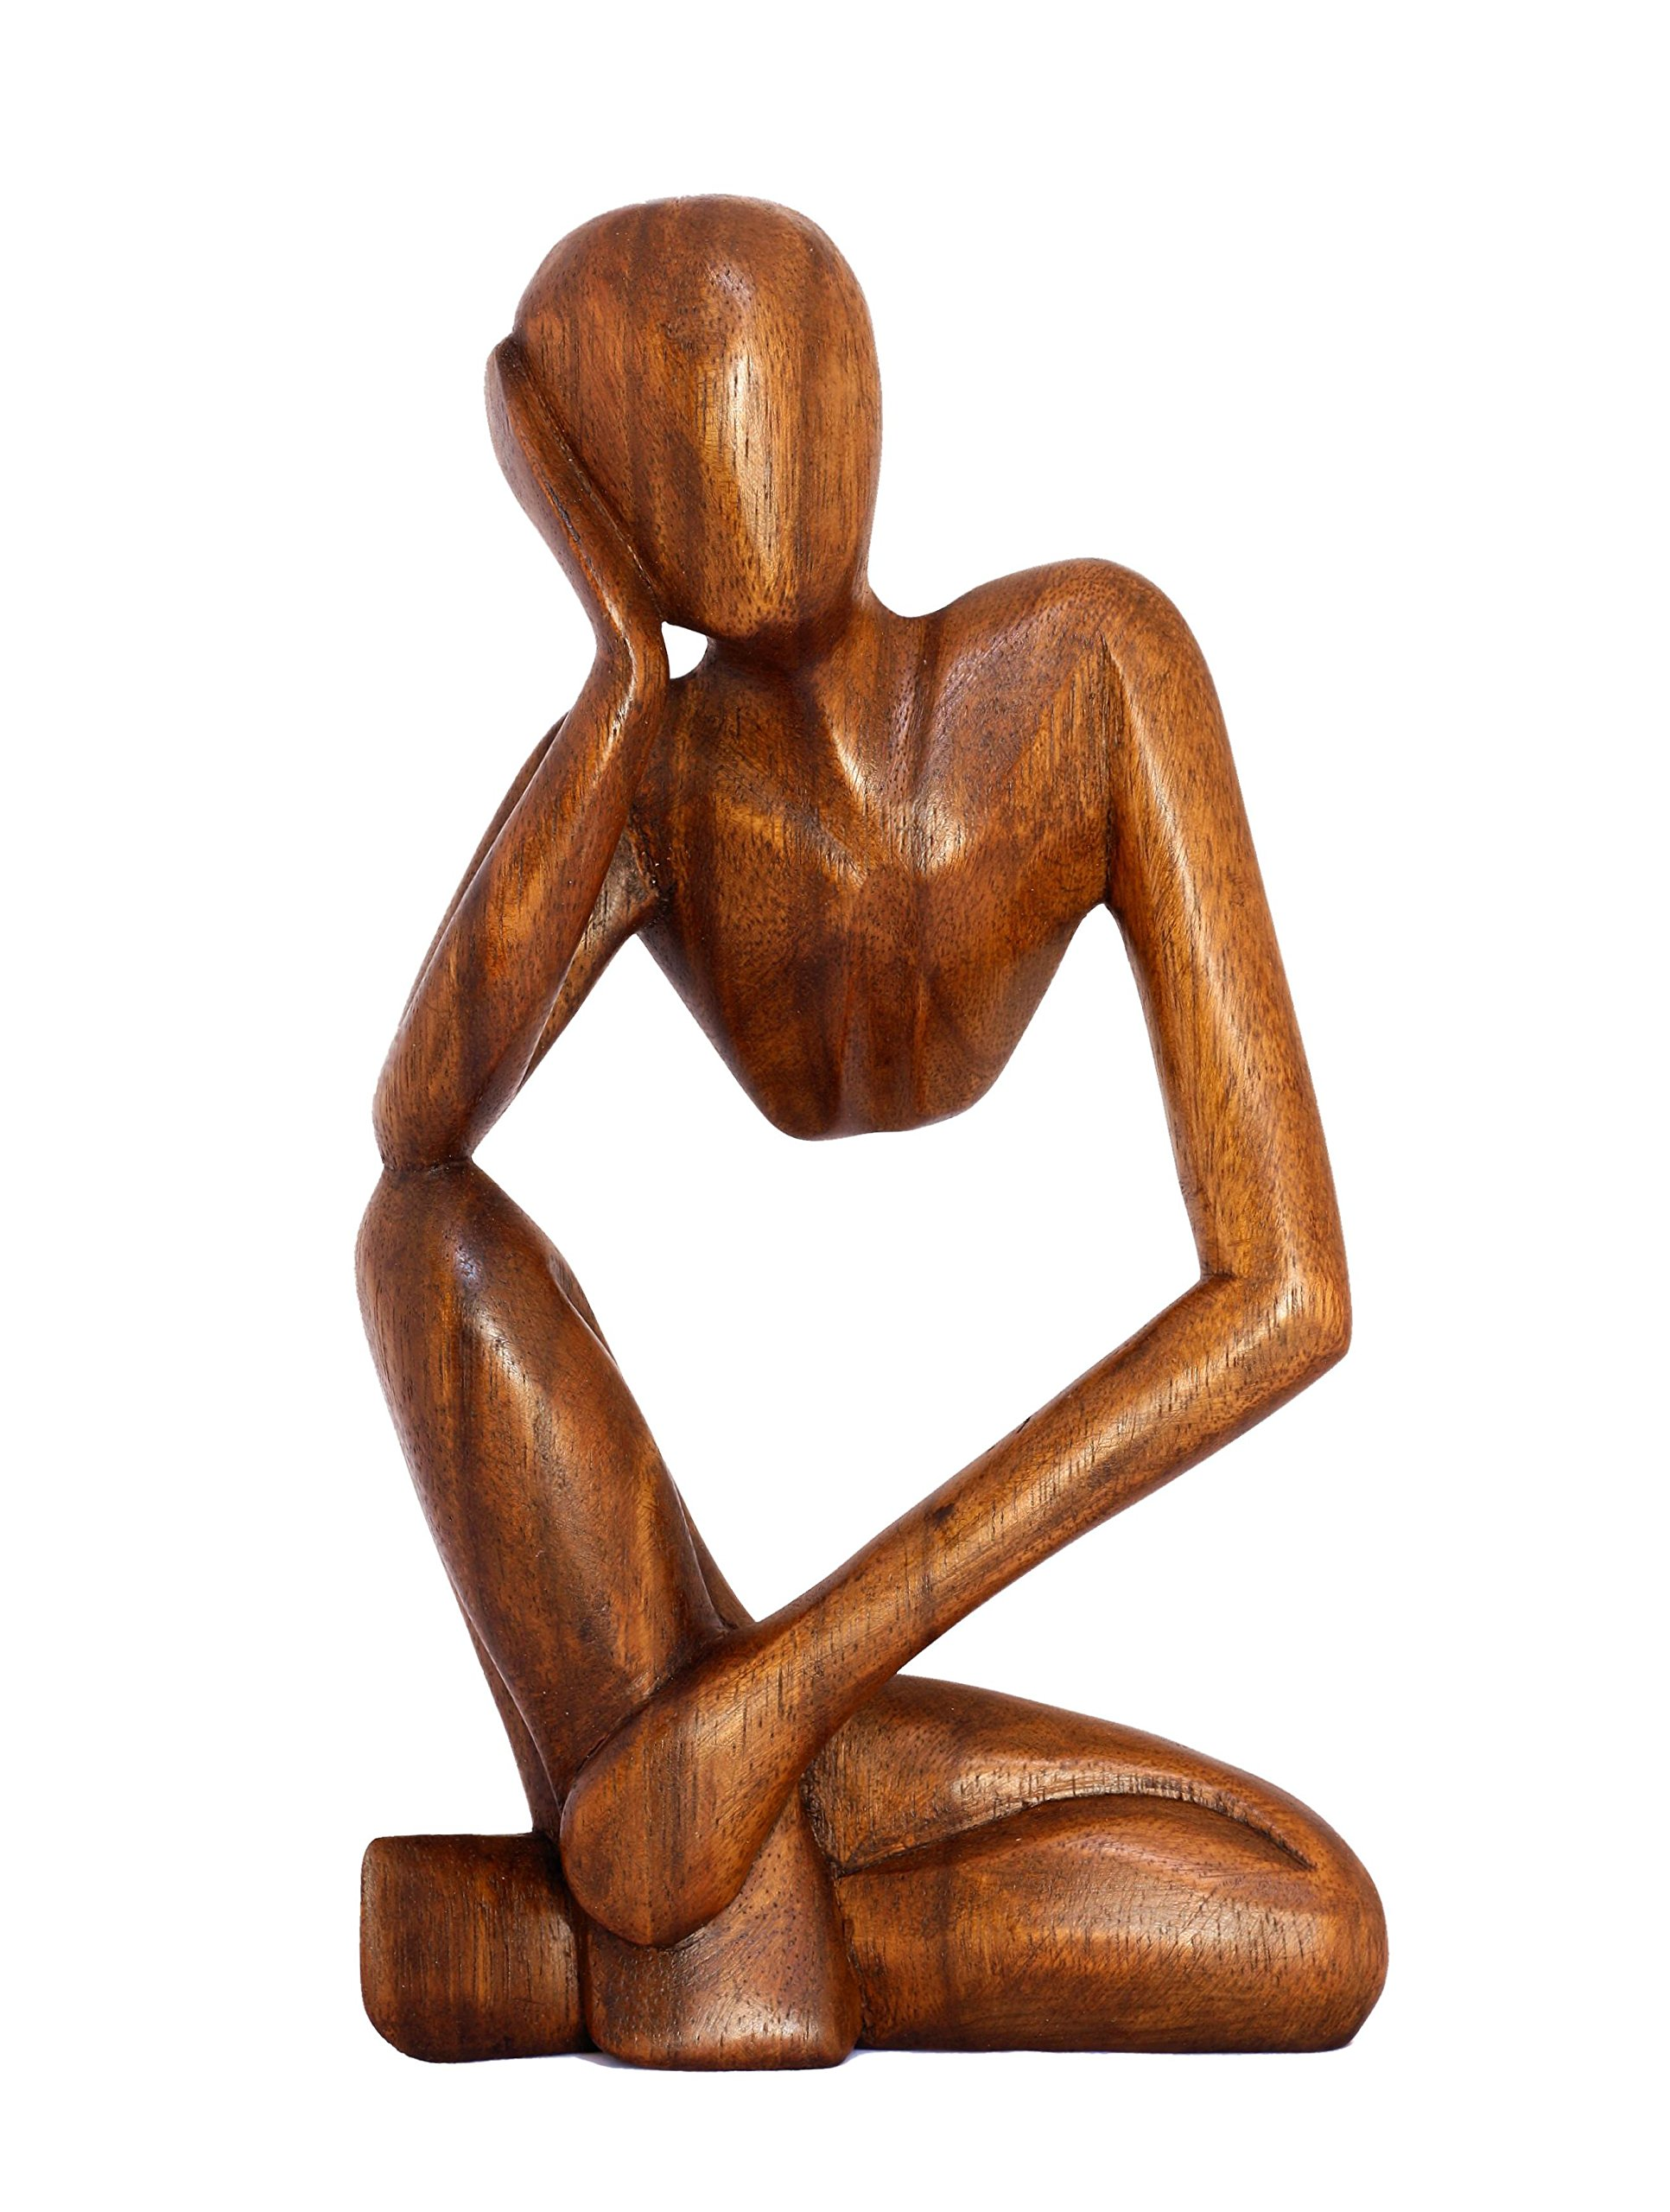 G6 Collection 12'' Wooden Handmade Abstract Sculpture Statue Handcrafted - Thinking Man - Gift Art Decorative Home Decor Figurine Accent Decoration Artwork Hand Carved (Brown) by G6 Collection